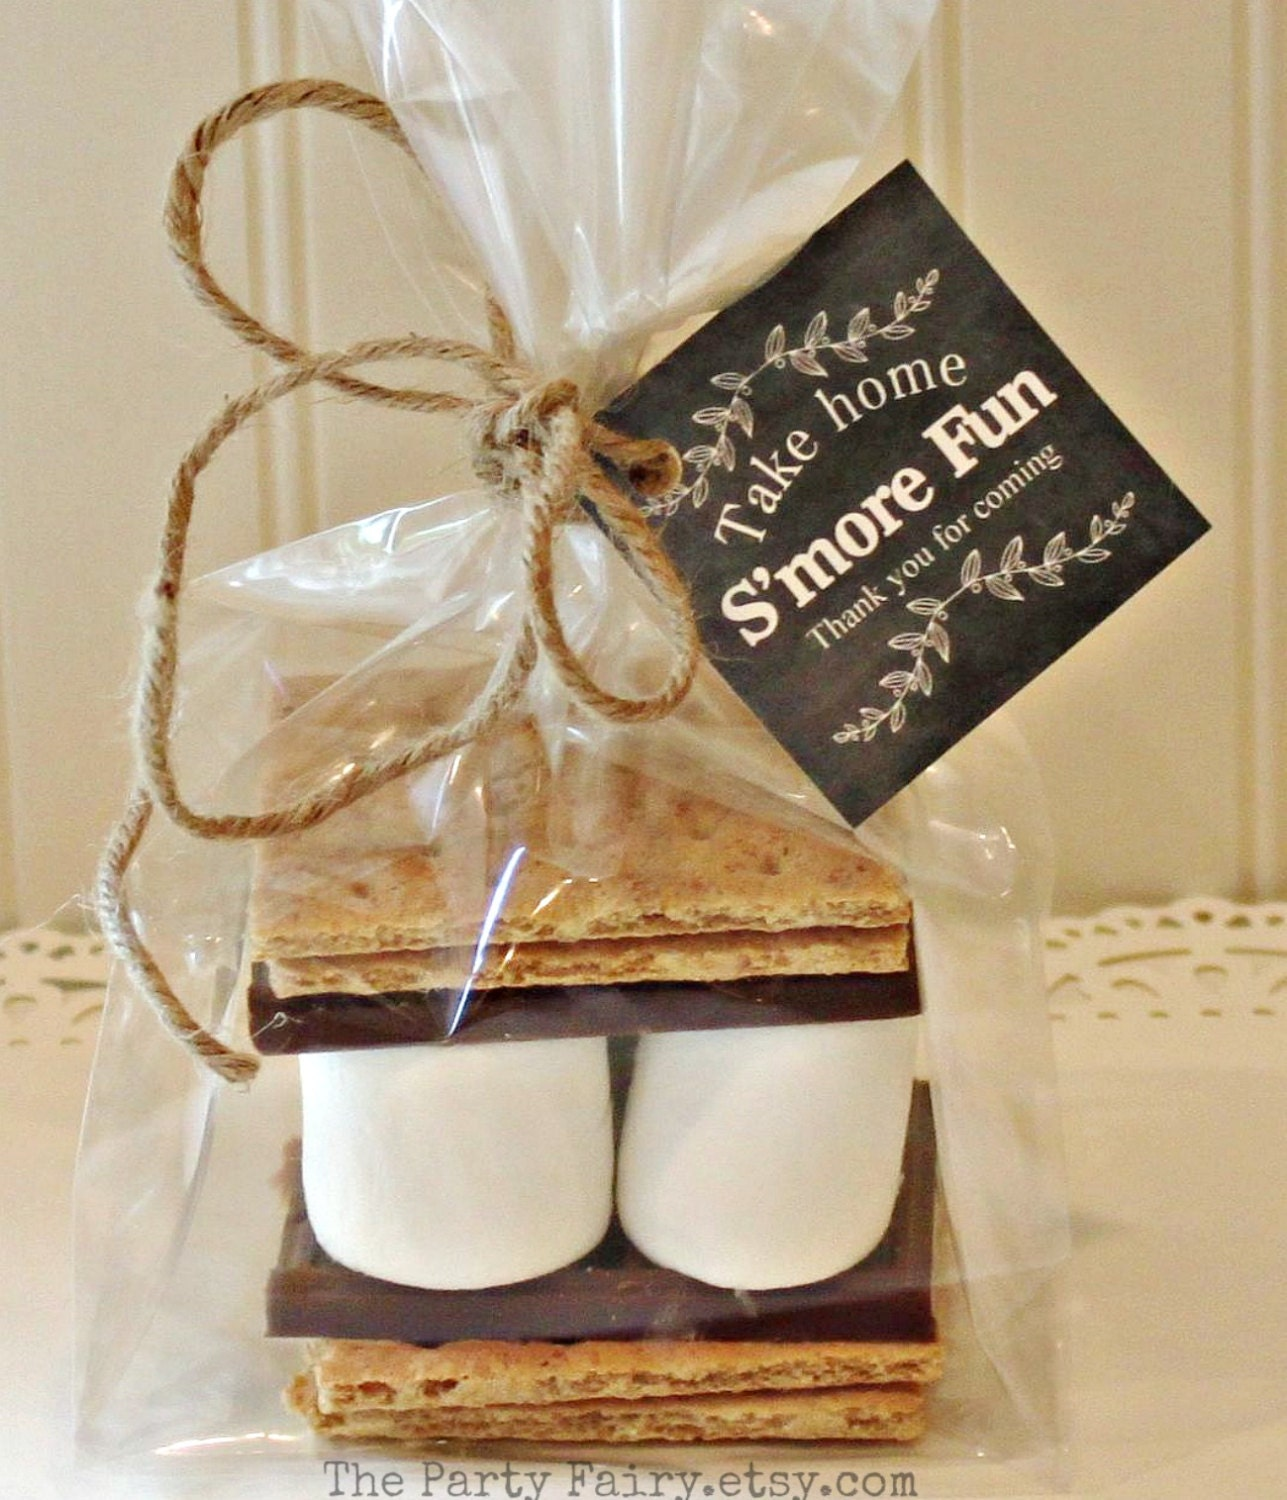 mores Party Favor Kits 12 S'mores Favor Kits by ThePartyFairy